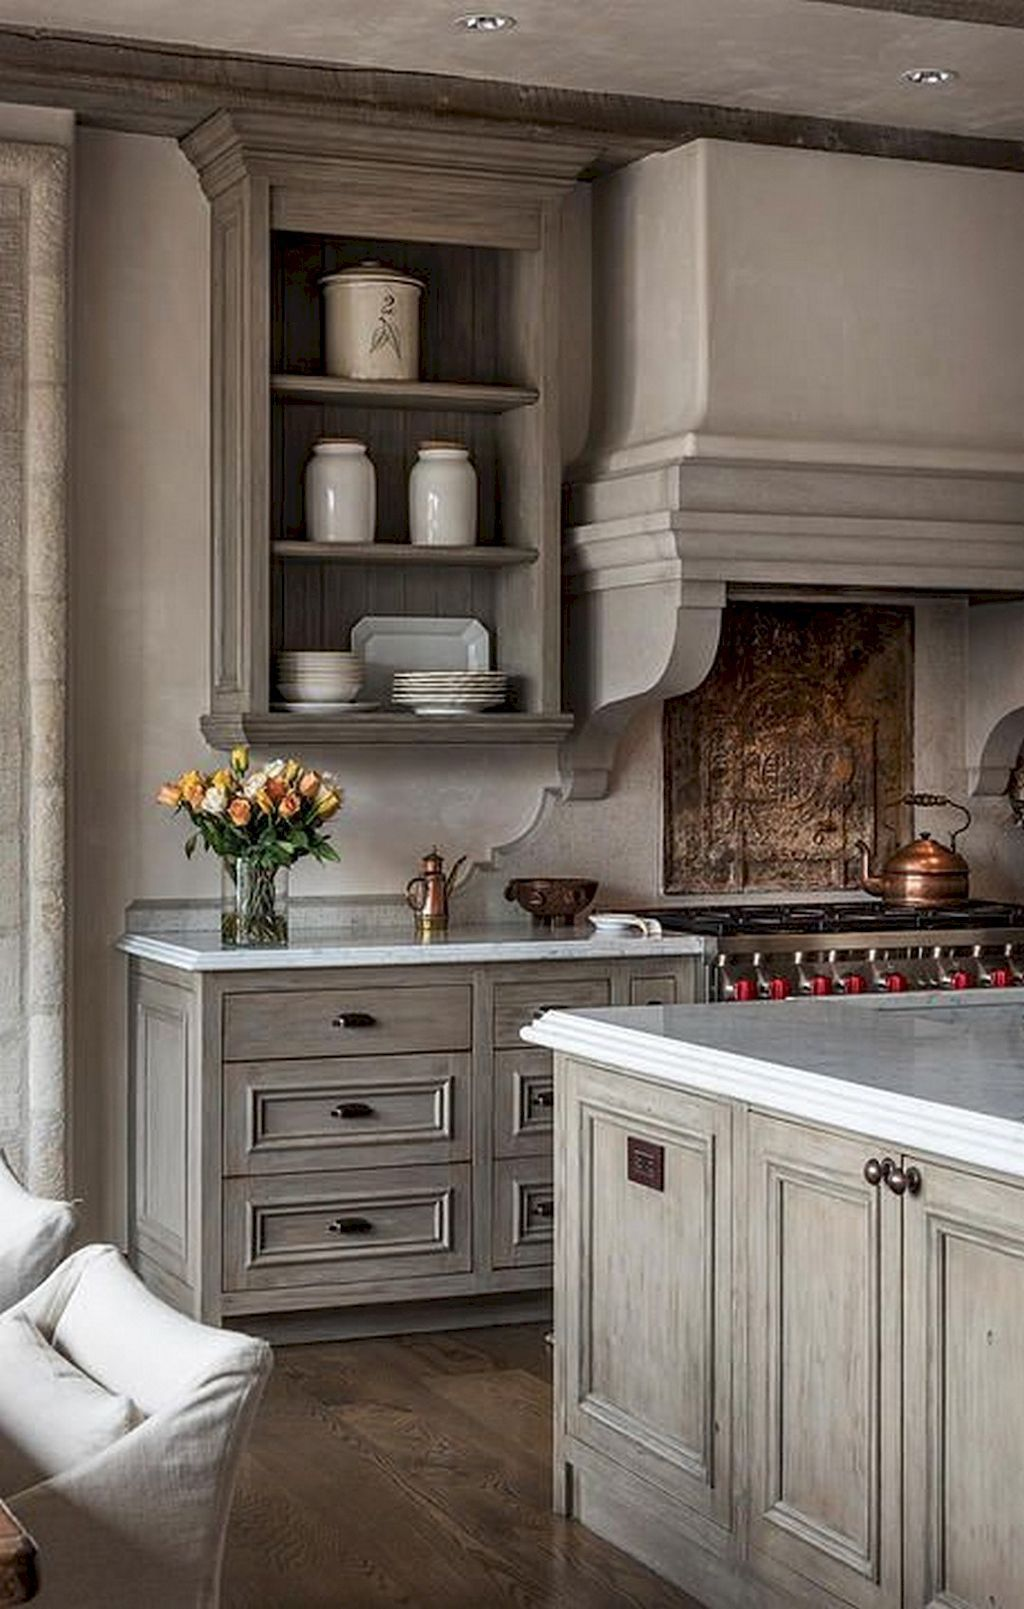 French Country Kitchen Design & Decor Ideas 21  Washburn New Kitchen Designes Review